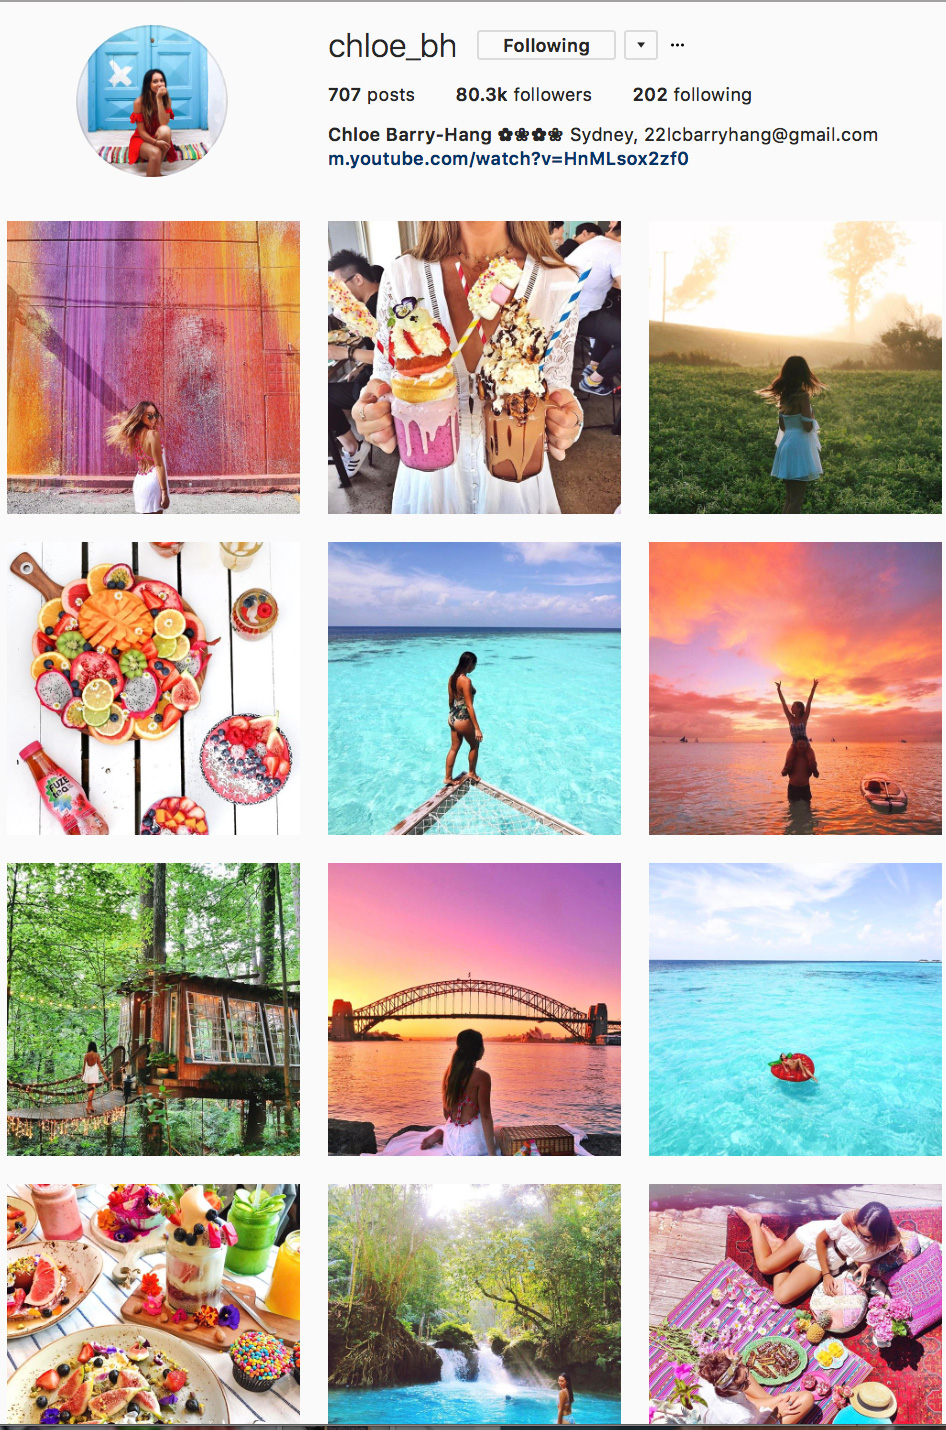 10 Instagram Accounts to Follow If You Have Major Wanderlust